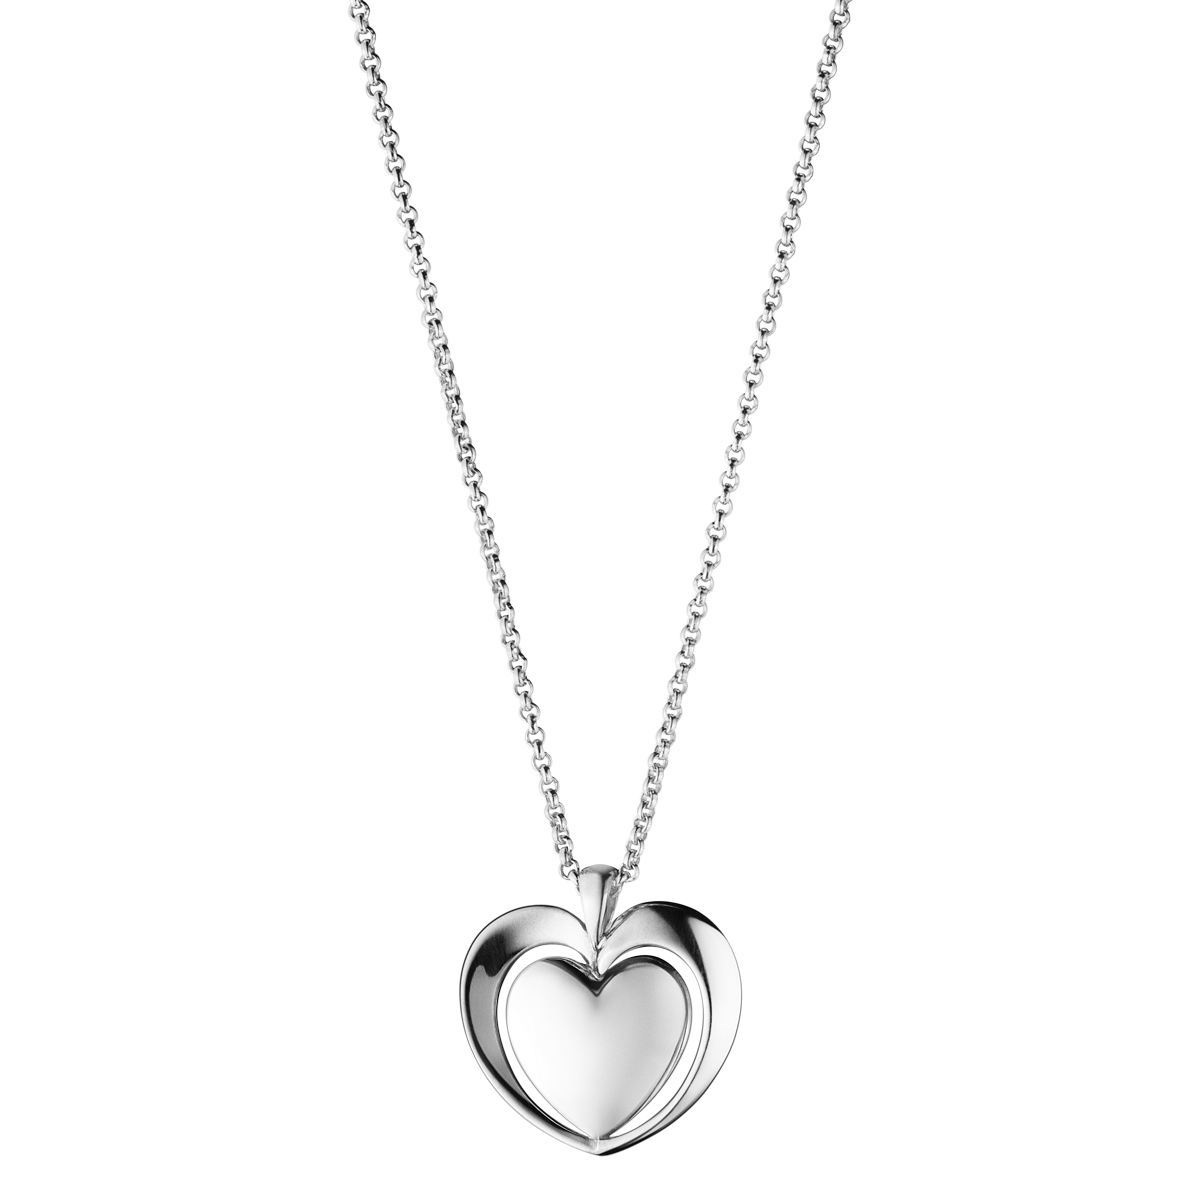 Heart necklace png. Jewelry images free download